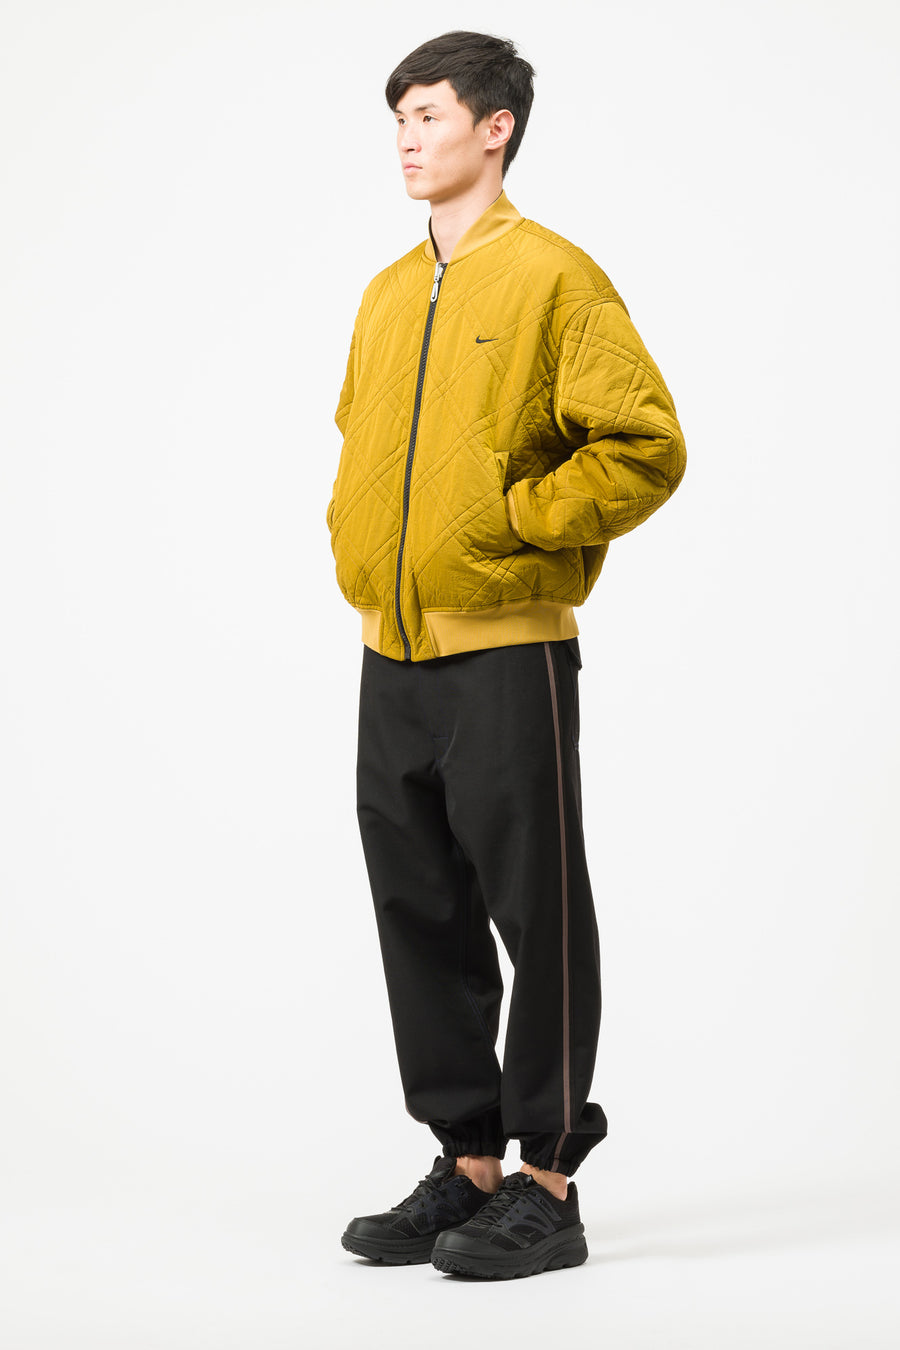 Nike Classic x Sport Jacket in Dark Sulfur/Black - Notre